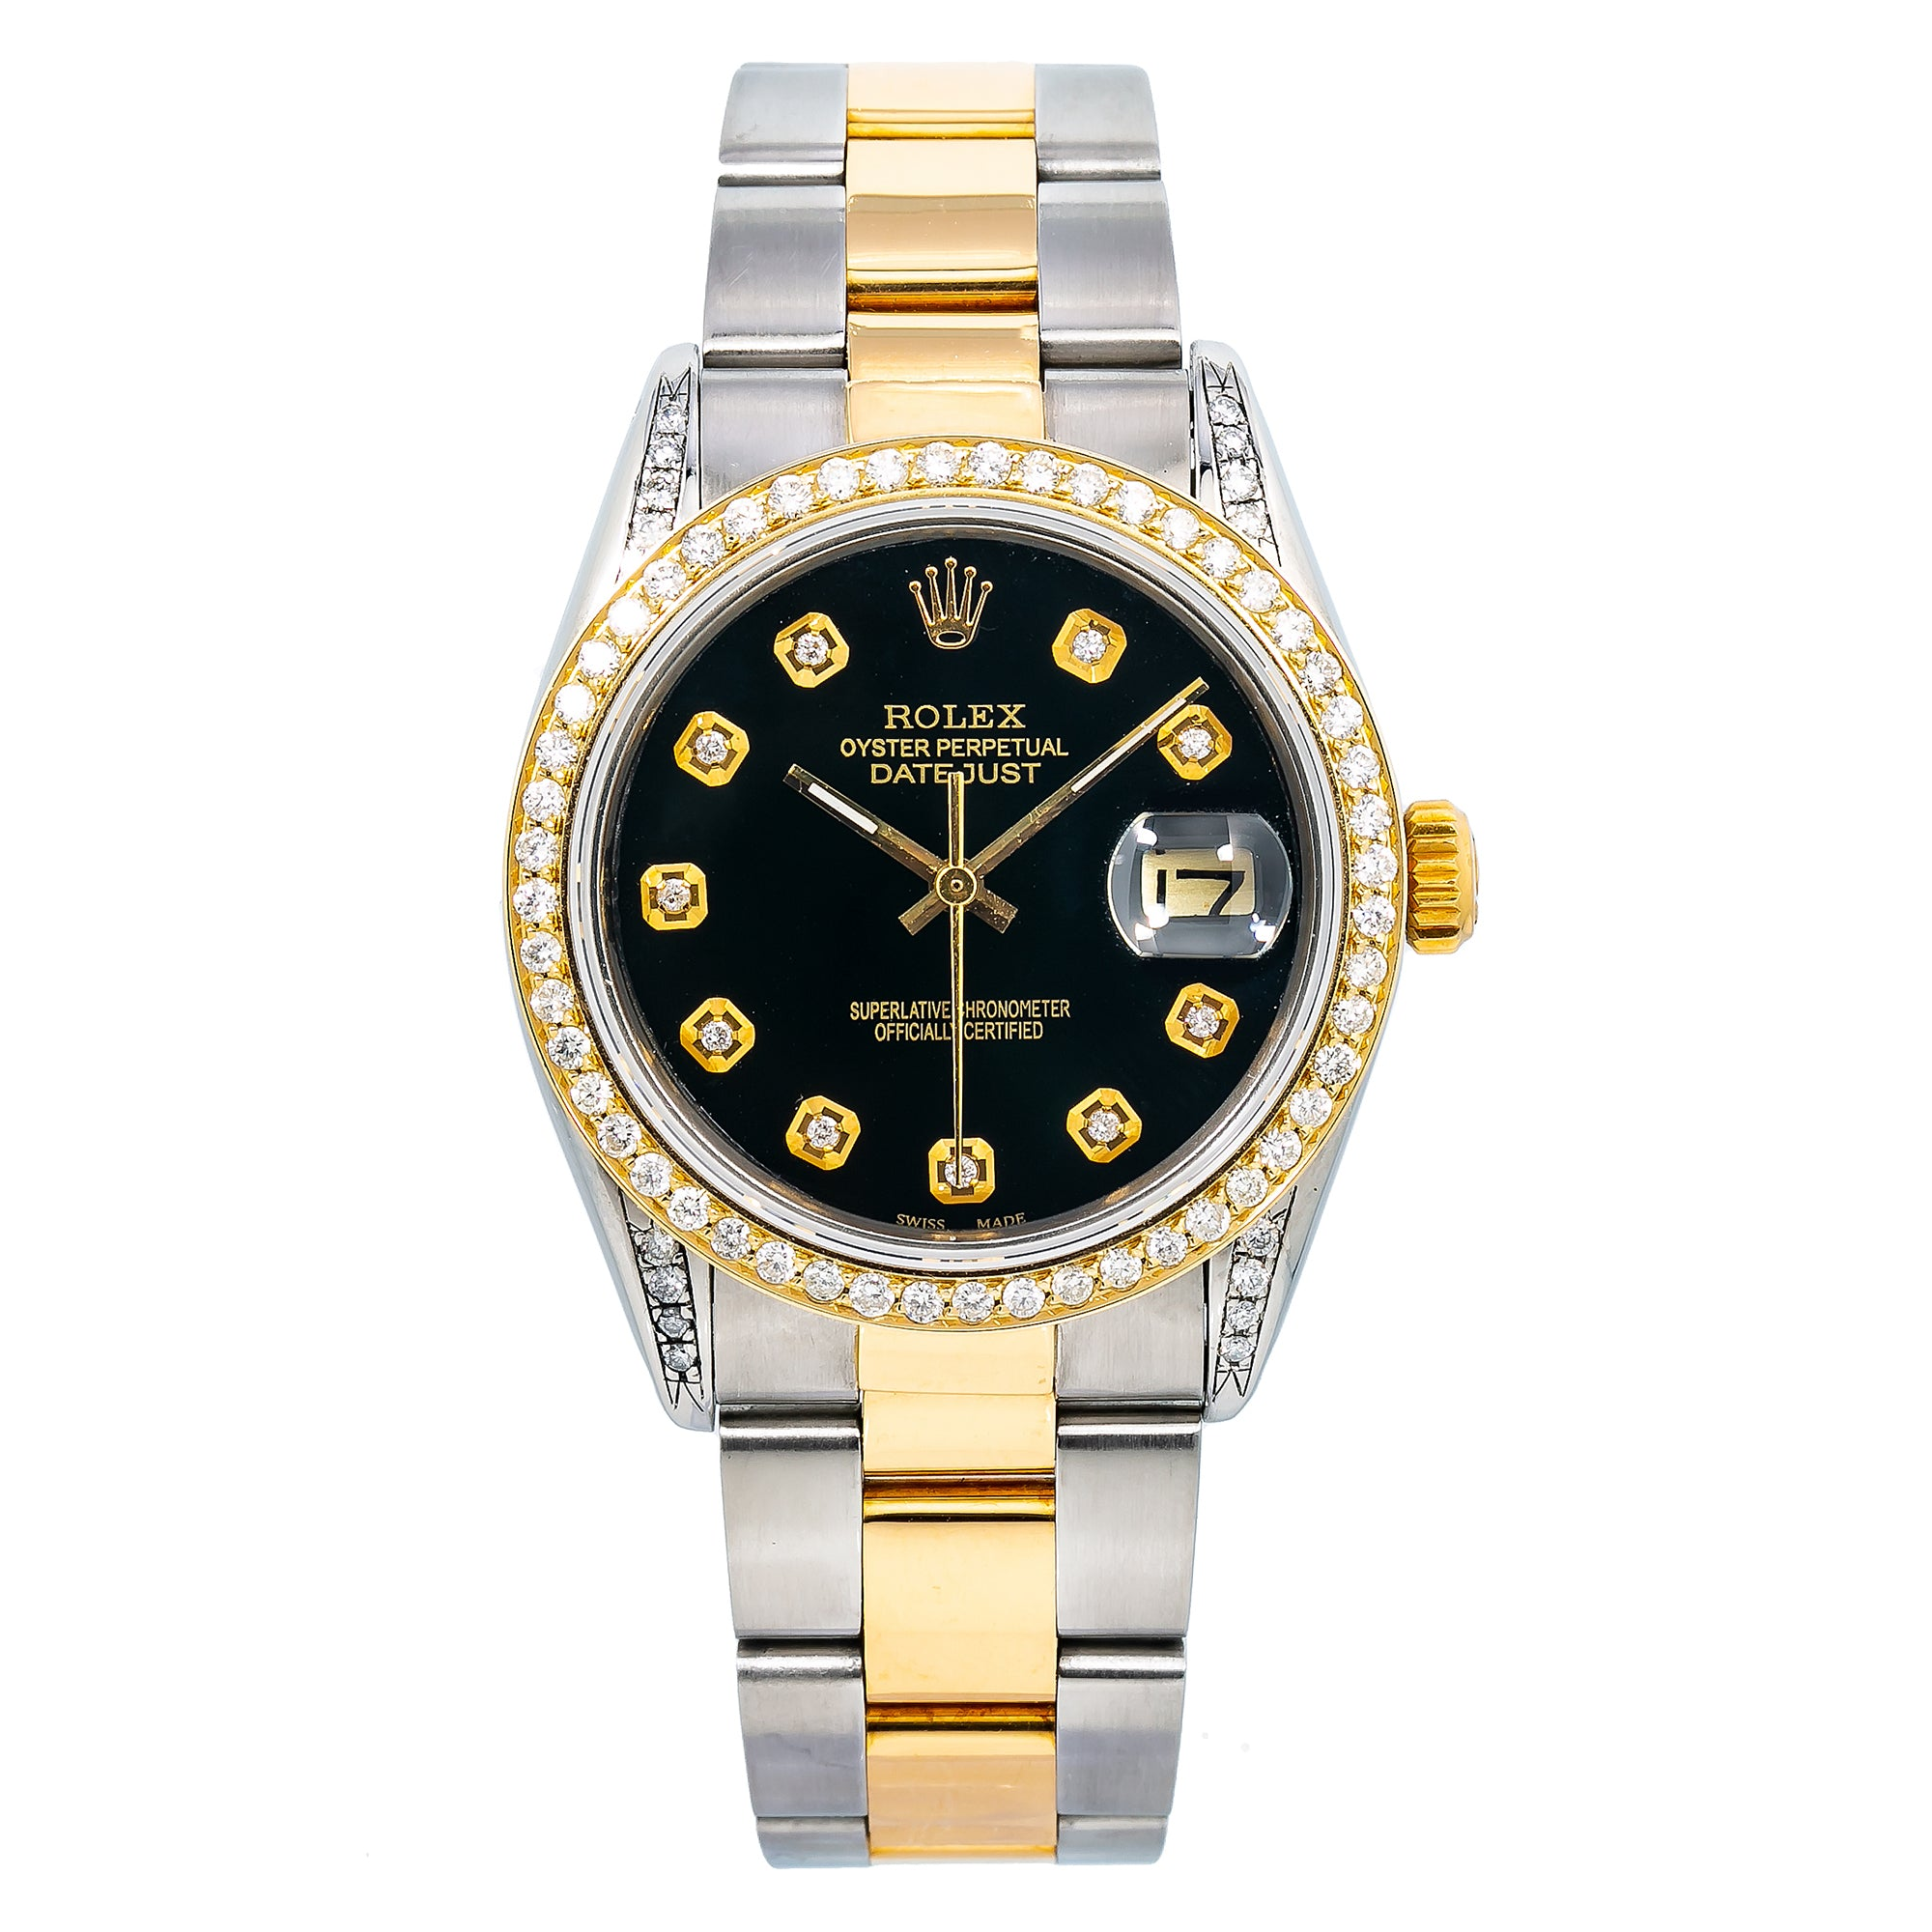 Rolex Oyster Perpetual Date 1505 34MM Black Diamond Dial With Stainless Steel Bracelet